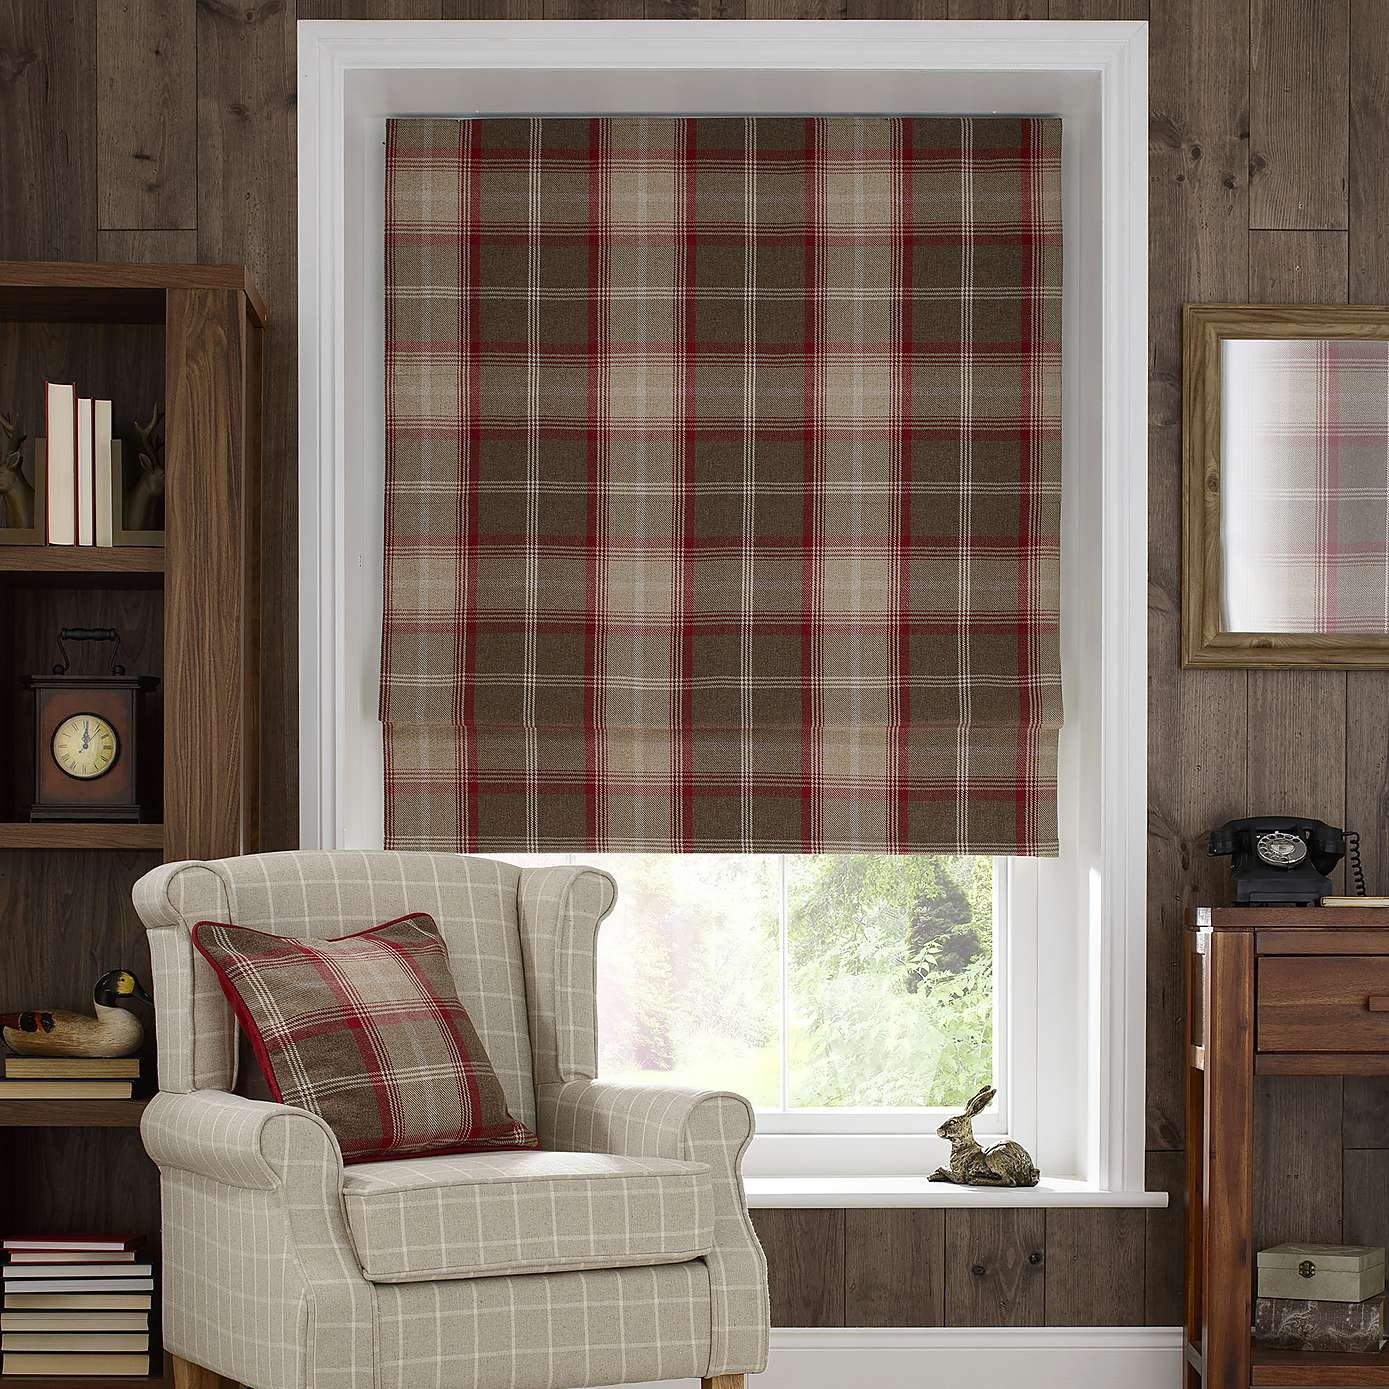 Red Highland Check Blackout Roman Blind Dunelm Living Room Regarding Blackout Curtains And Blinds (Image 13 of 15)